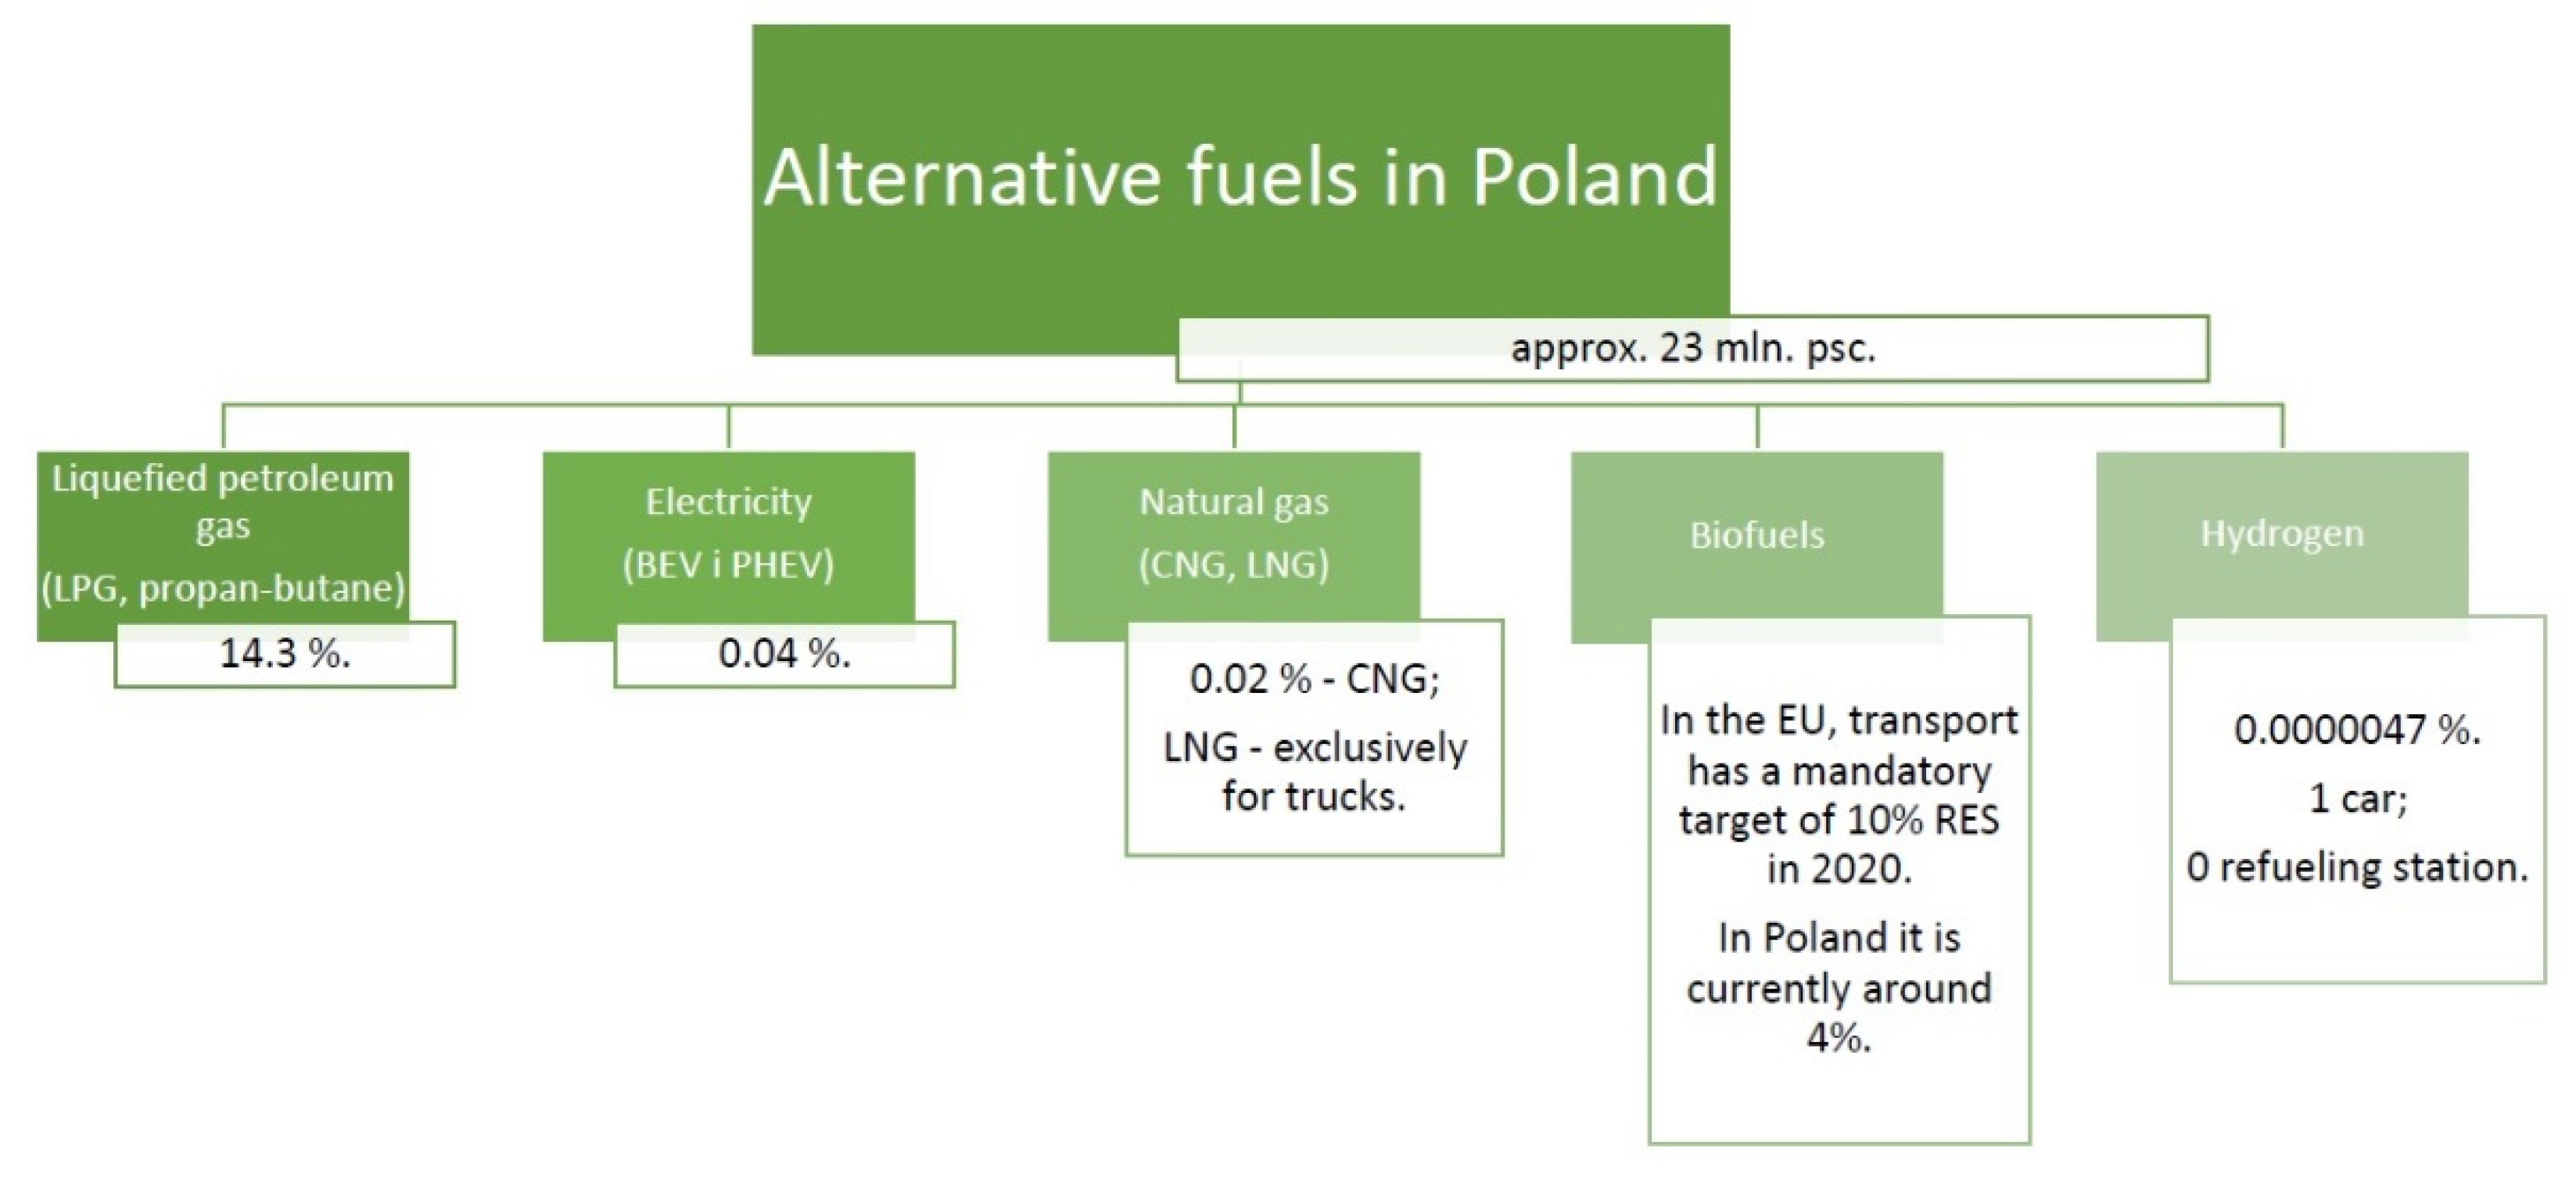 Energies Free Full Text Research And Prospects For The Development Of Alternative Fuels In The Transport Sector In Poland A Review Html